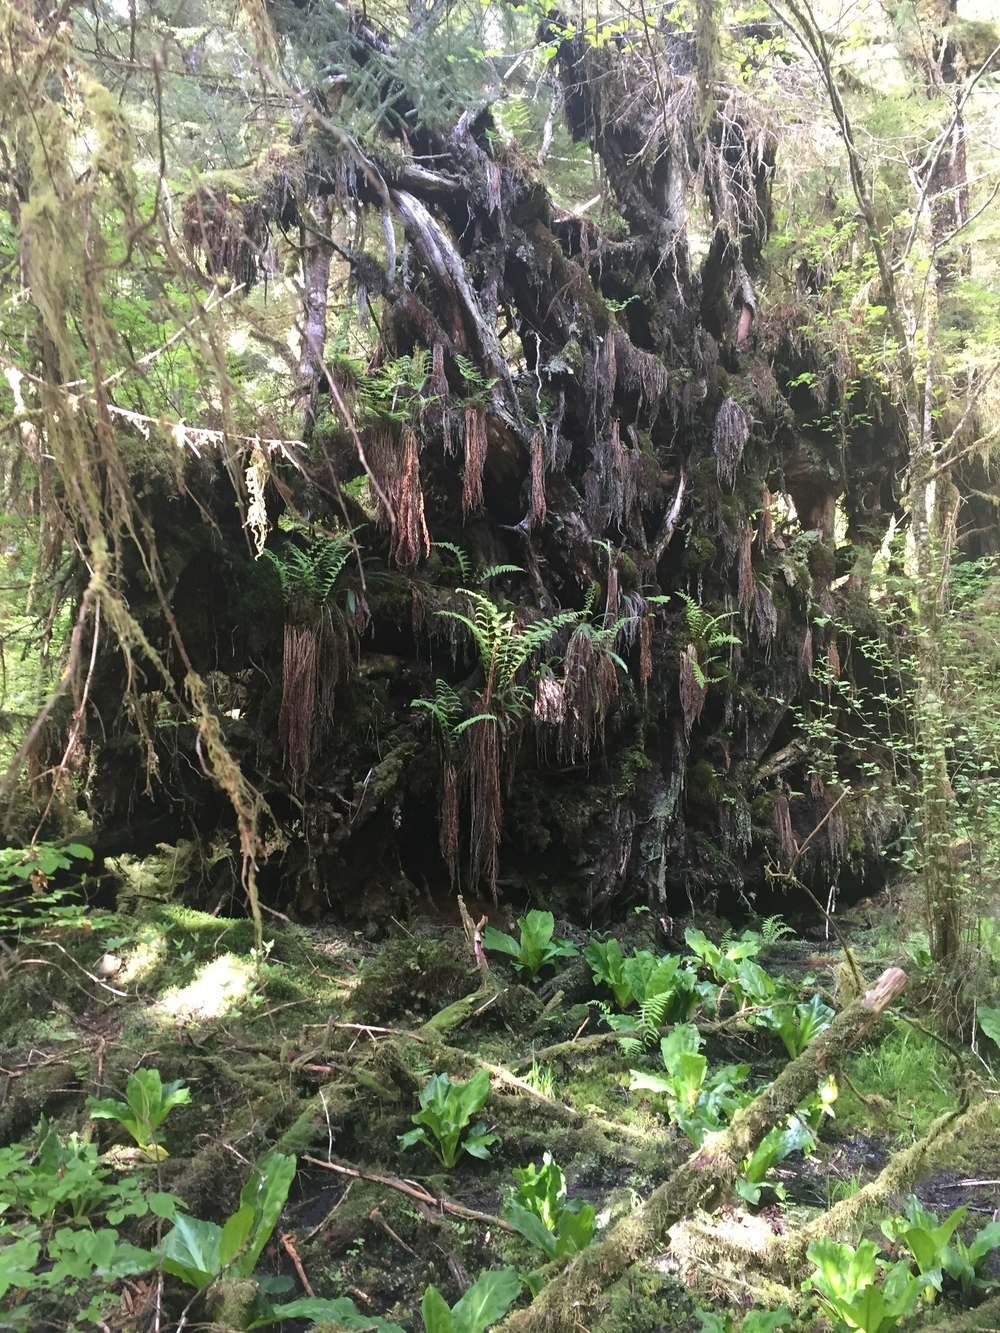 Crazy root systems everywhere!